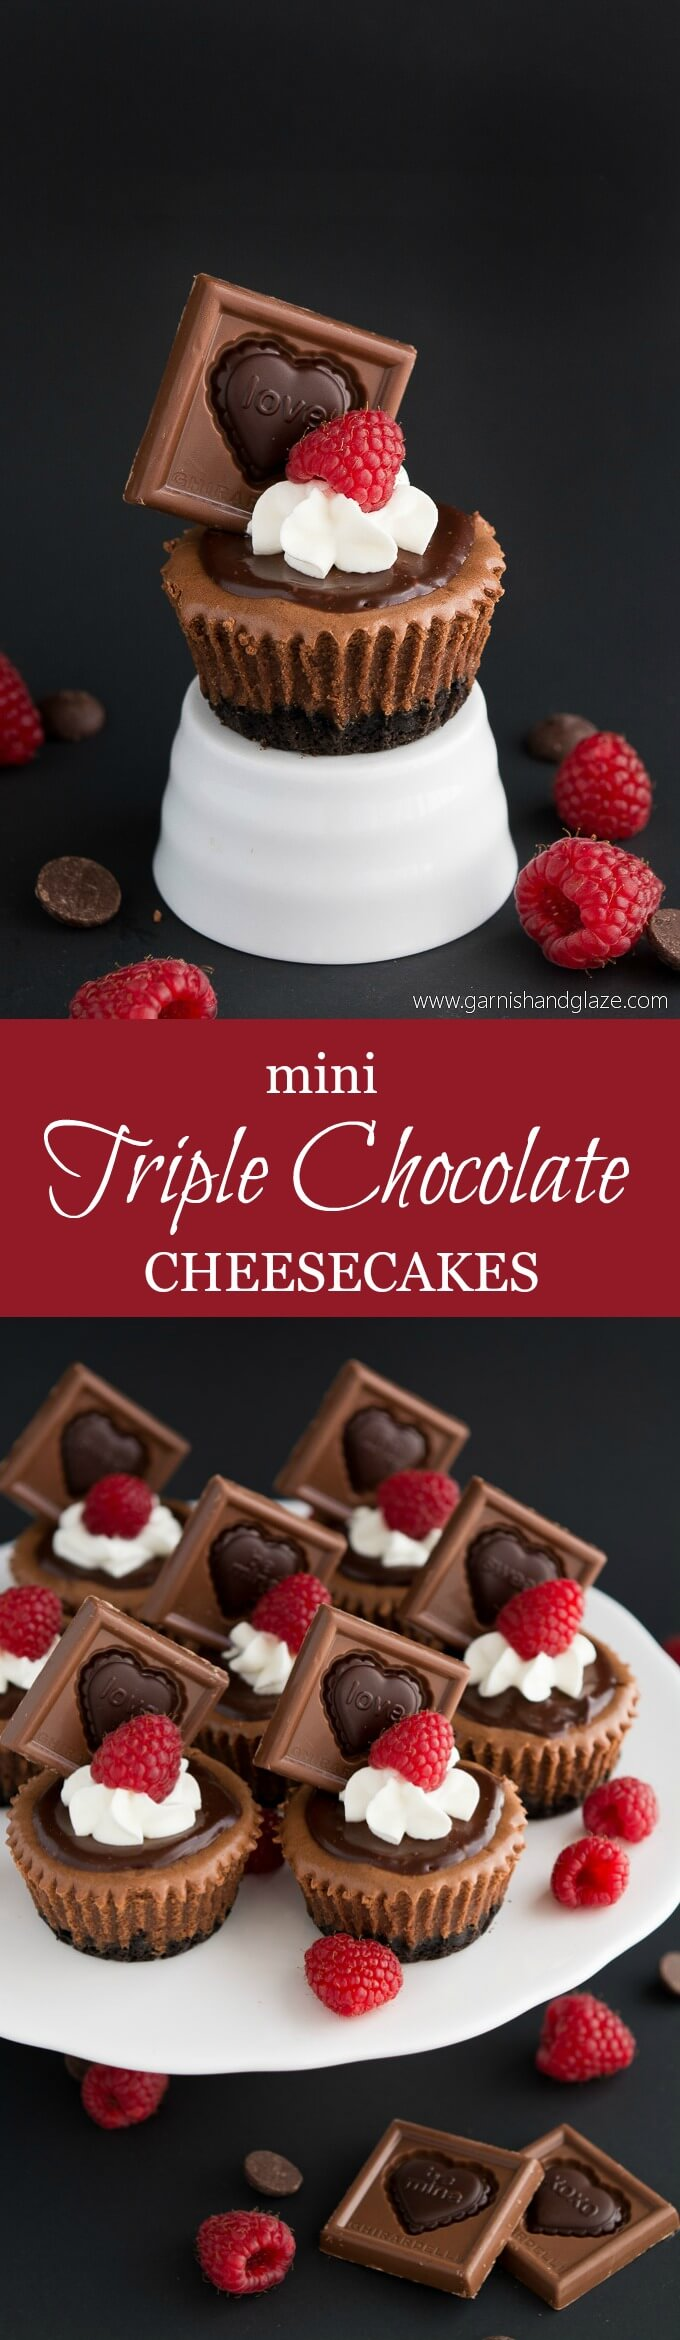 These rich, smooth, and creamy Mini Triple Chocolate Cheesecakes are the perfect dessert for chocolate lovers!